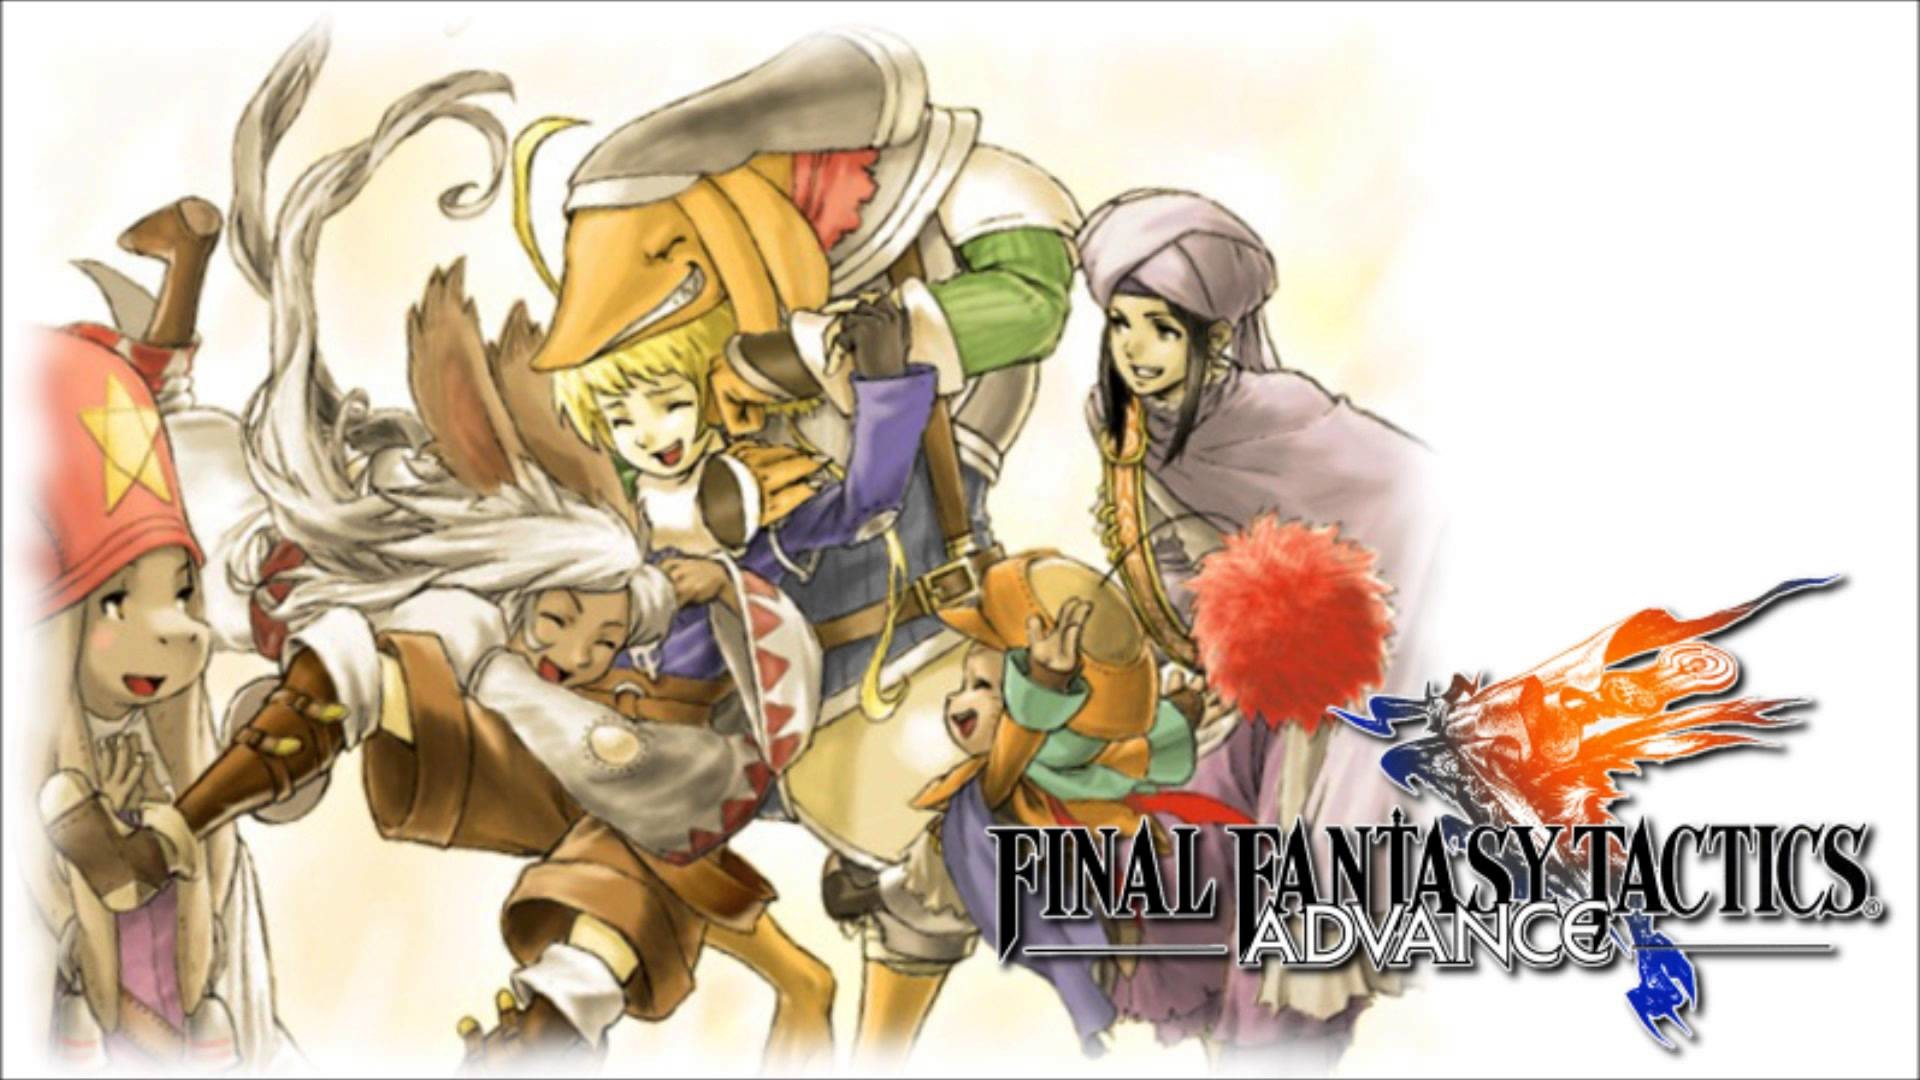 1920x1080 Final Fantasy III HD Wallpaper 18 - 1920 X 1080